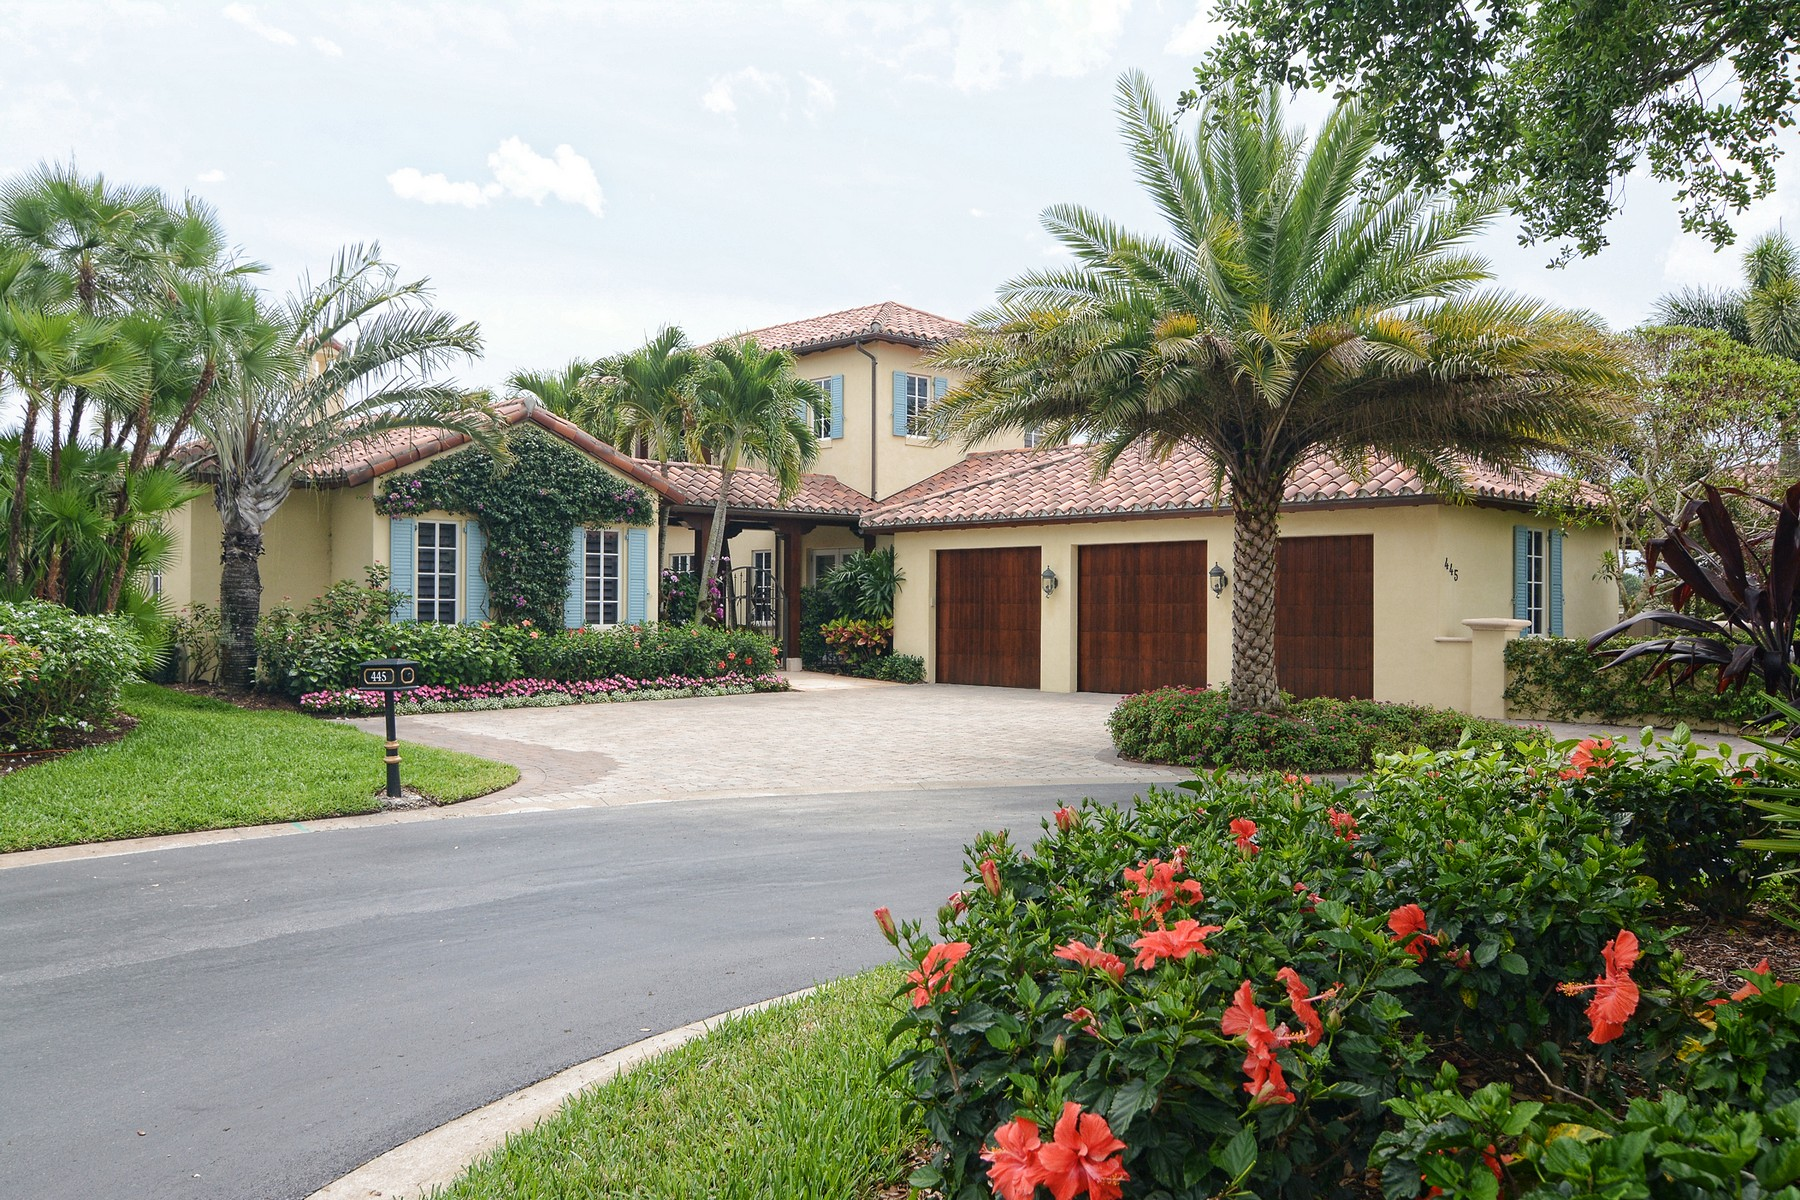 Single Family Home for Sale at Trump National Jupiter 445 Red Hawk Drive Jupiter, Florida, 33477 United States